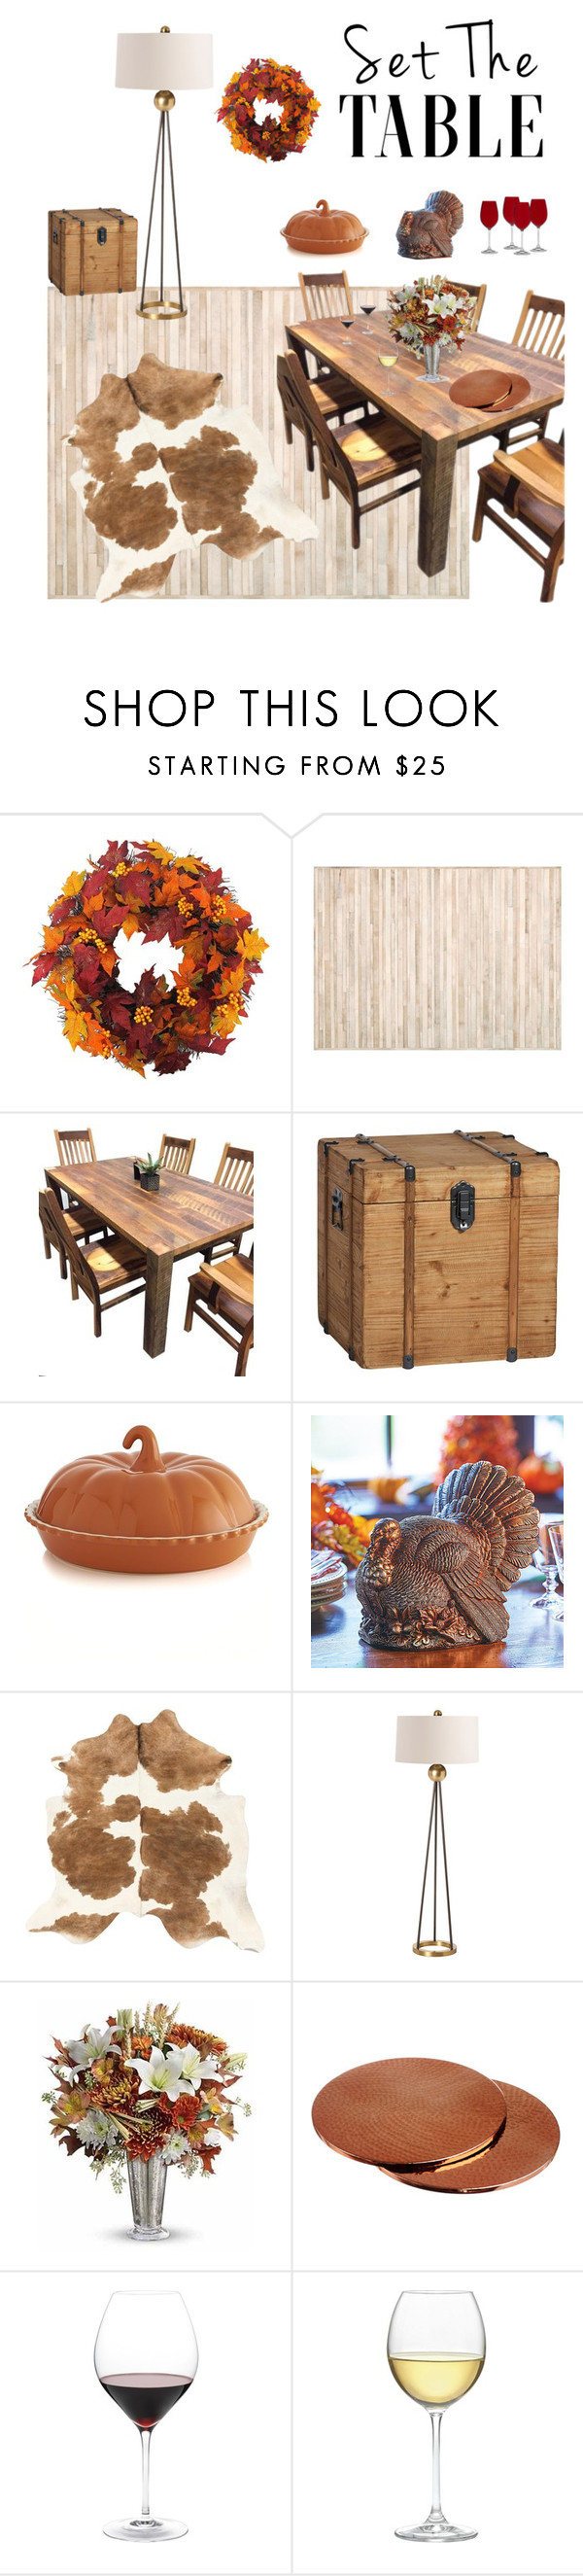 """""""Untitled #276"""" by rhirhiday ❤ liked on Polyvore featuring interior, interiors, interior design, home, home decor, interior decorating, Calvin Klein, DutchCrafters, Crate and Barrel and Improvements"""